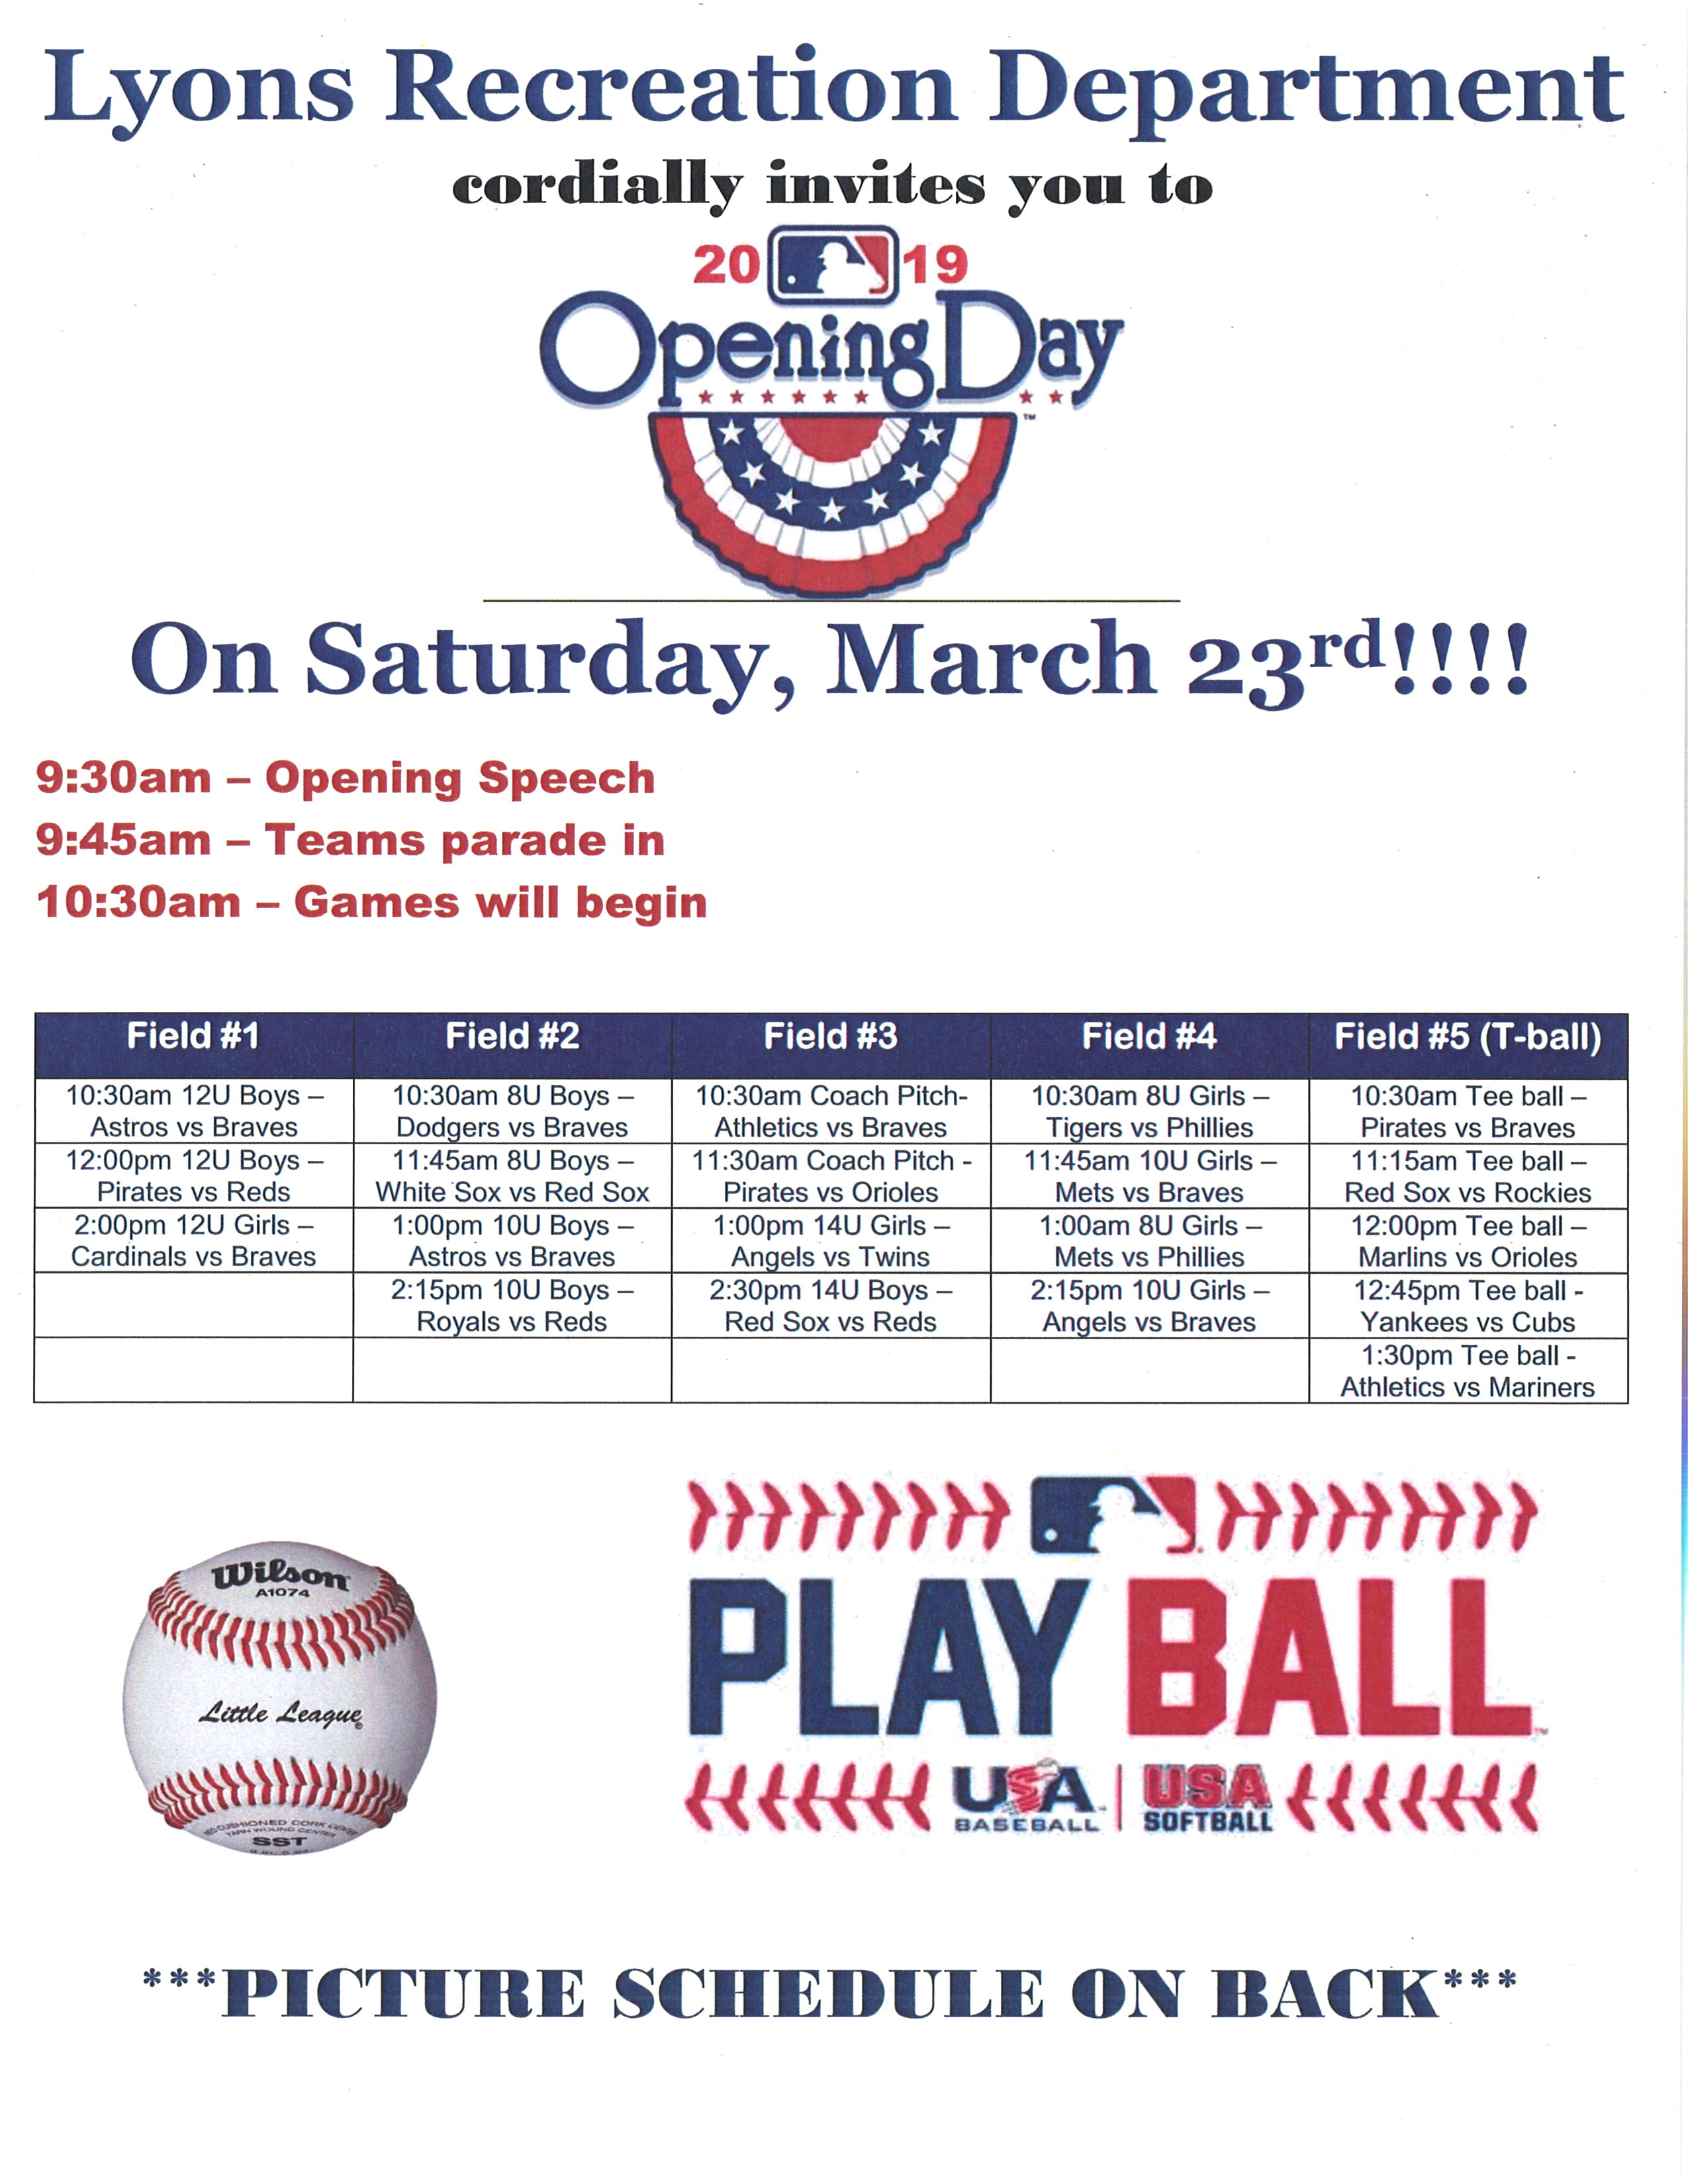 2019-03-23 Play Ball Lyons Recreation Department